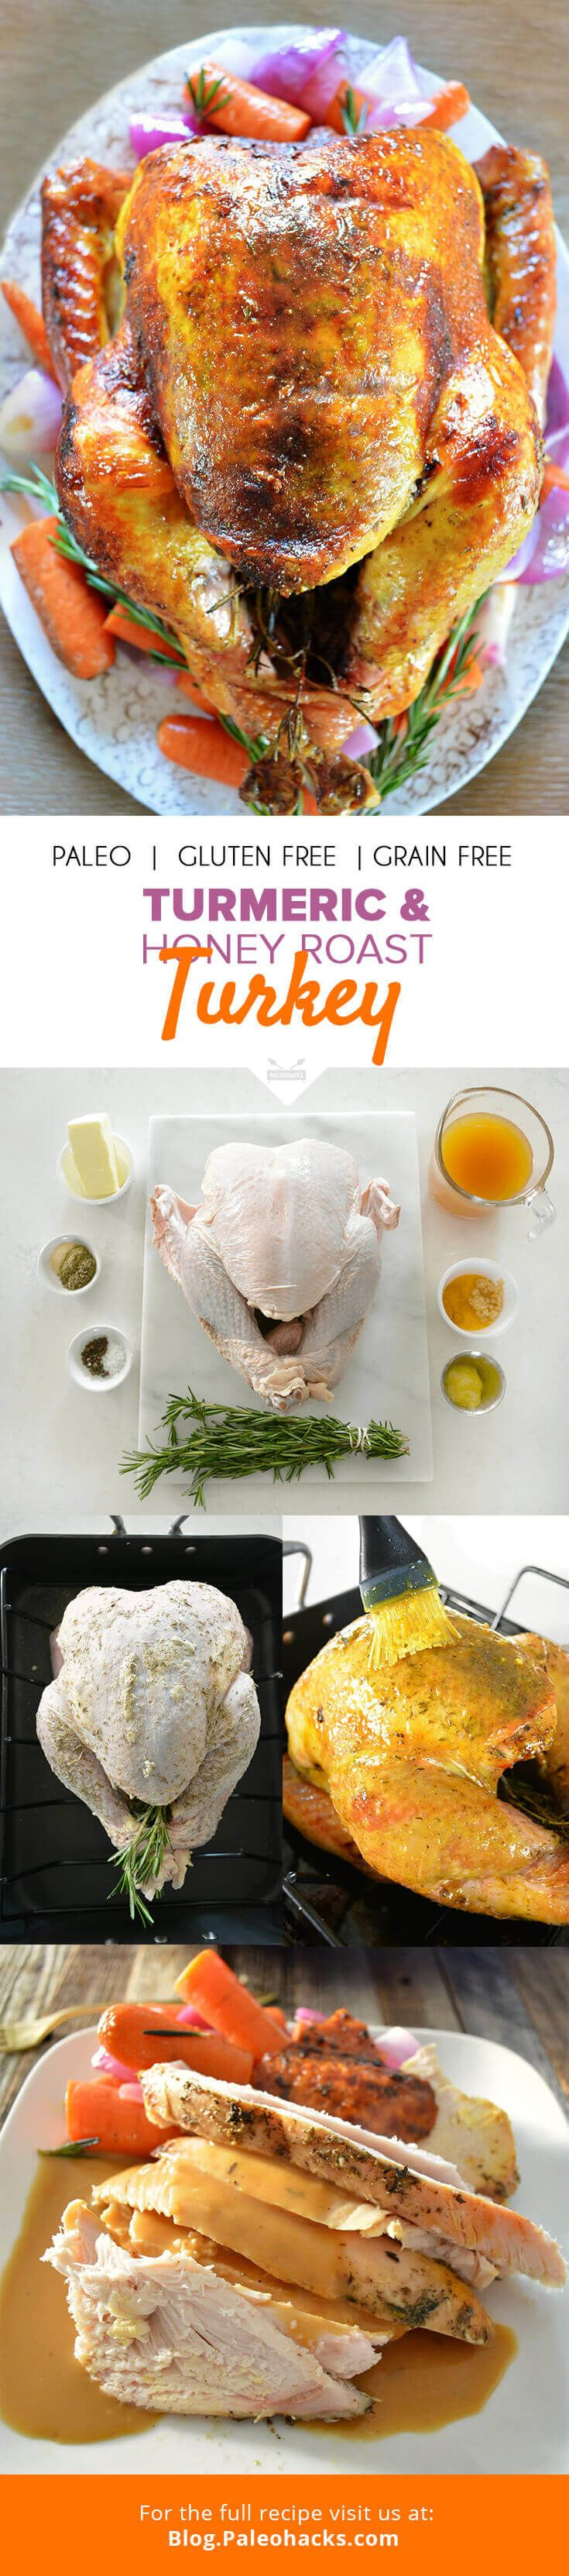 Traditional-PIN-Turmeric-and-Honey-Roast-Turkey.jpg